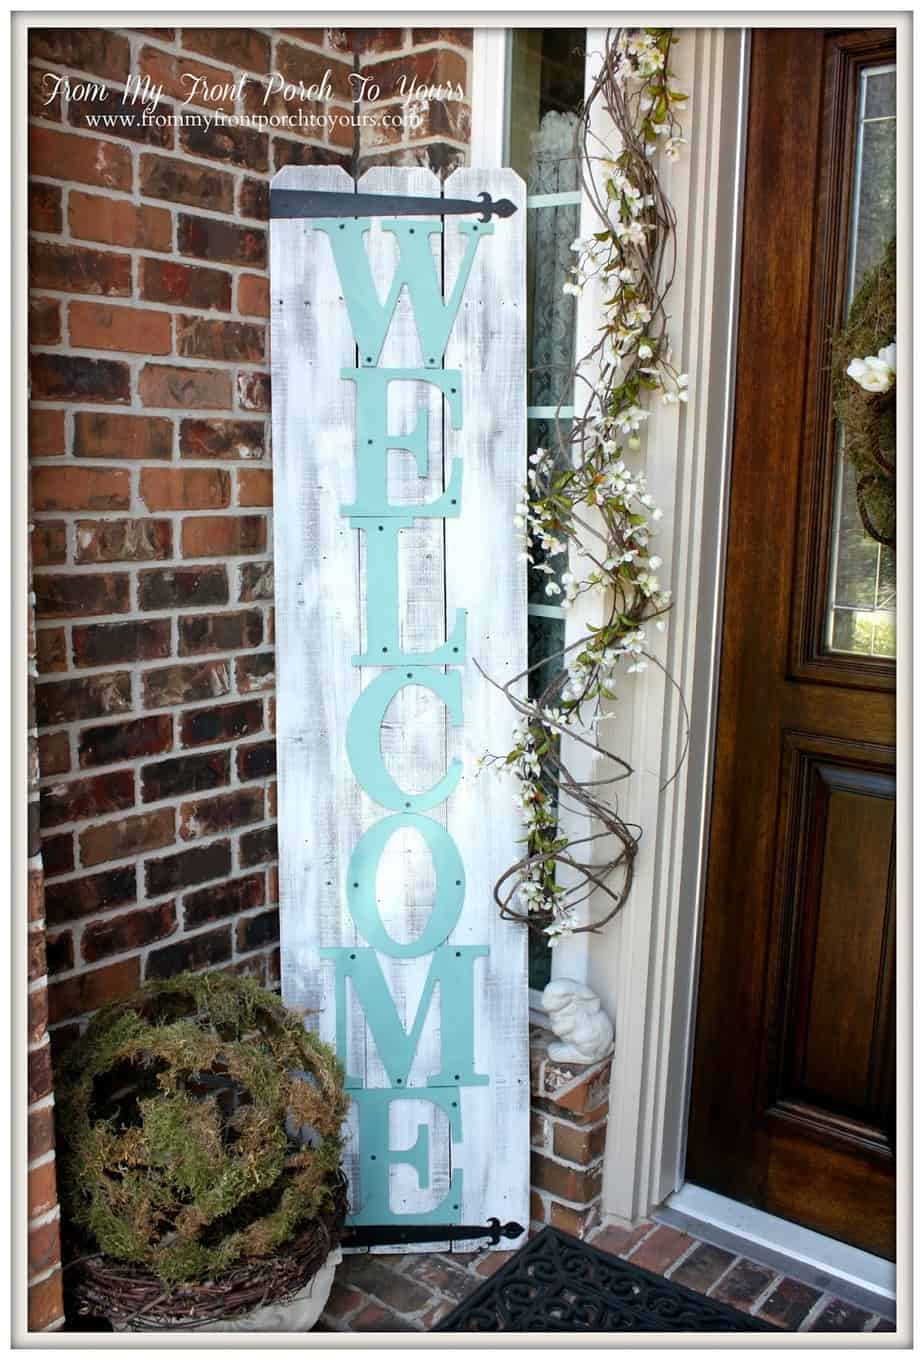 springporch2014welcomesignblueIMG_6621